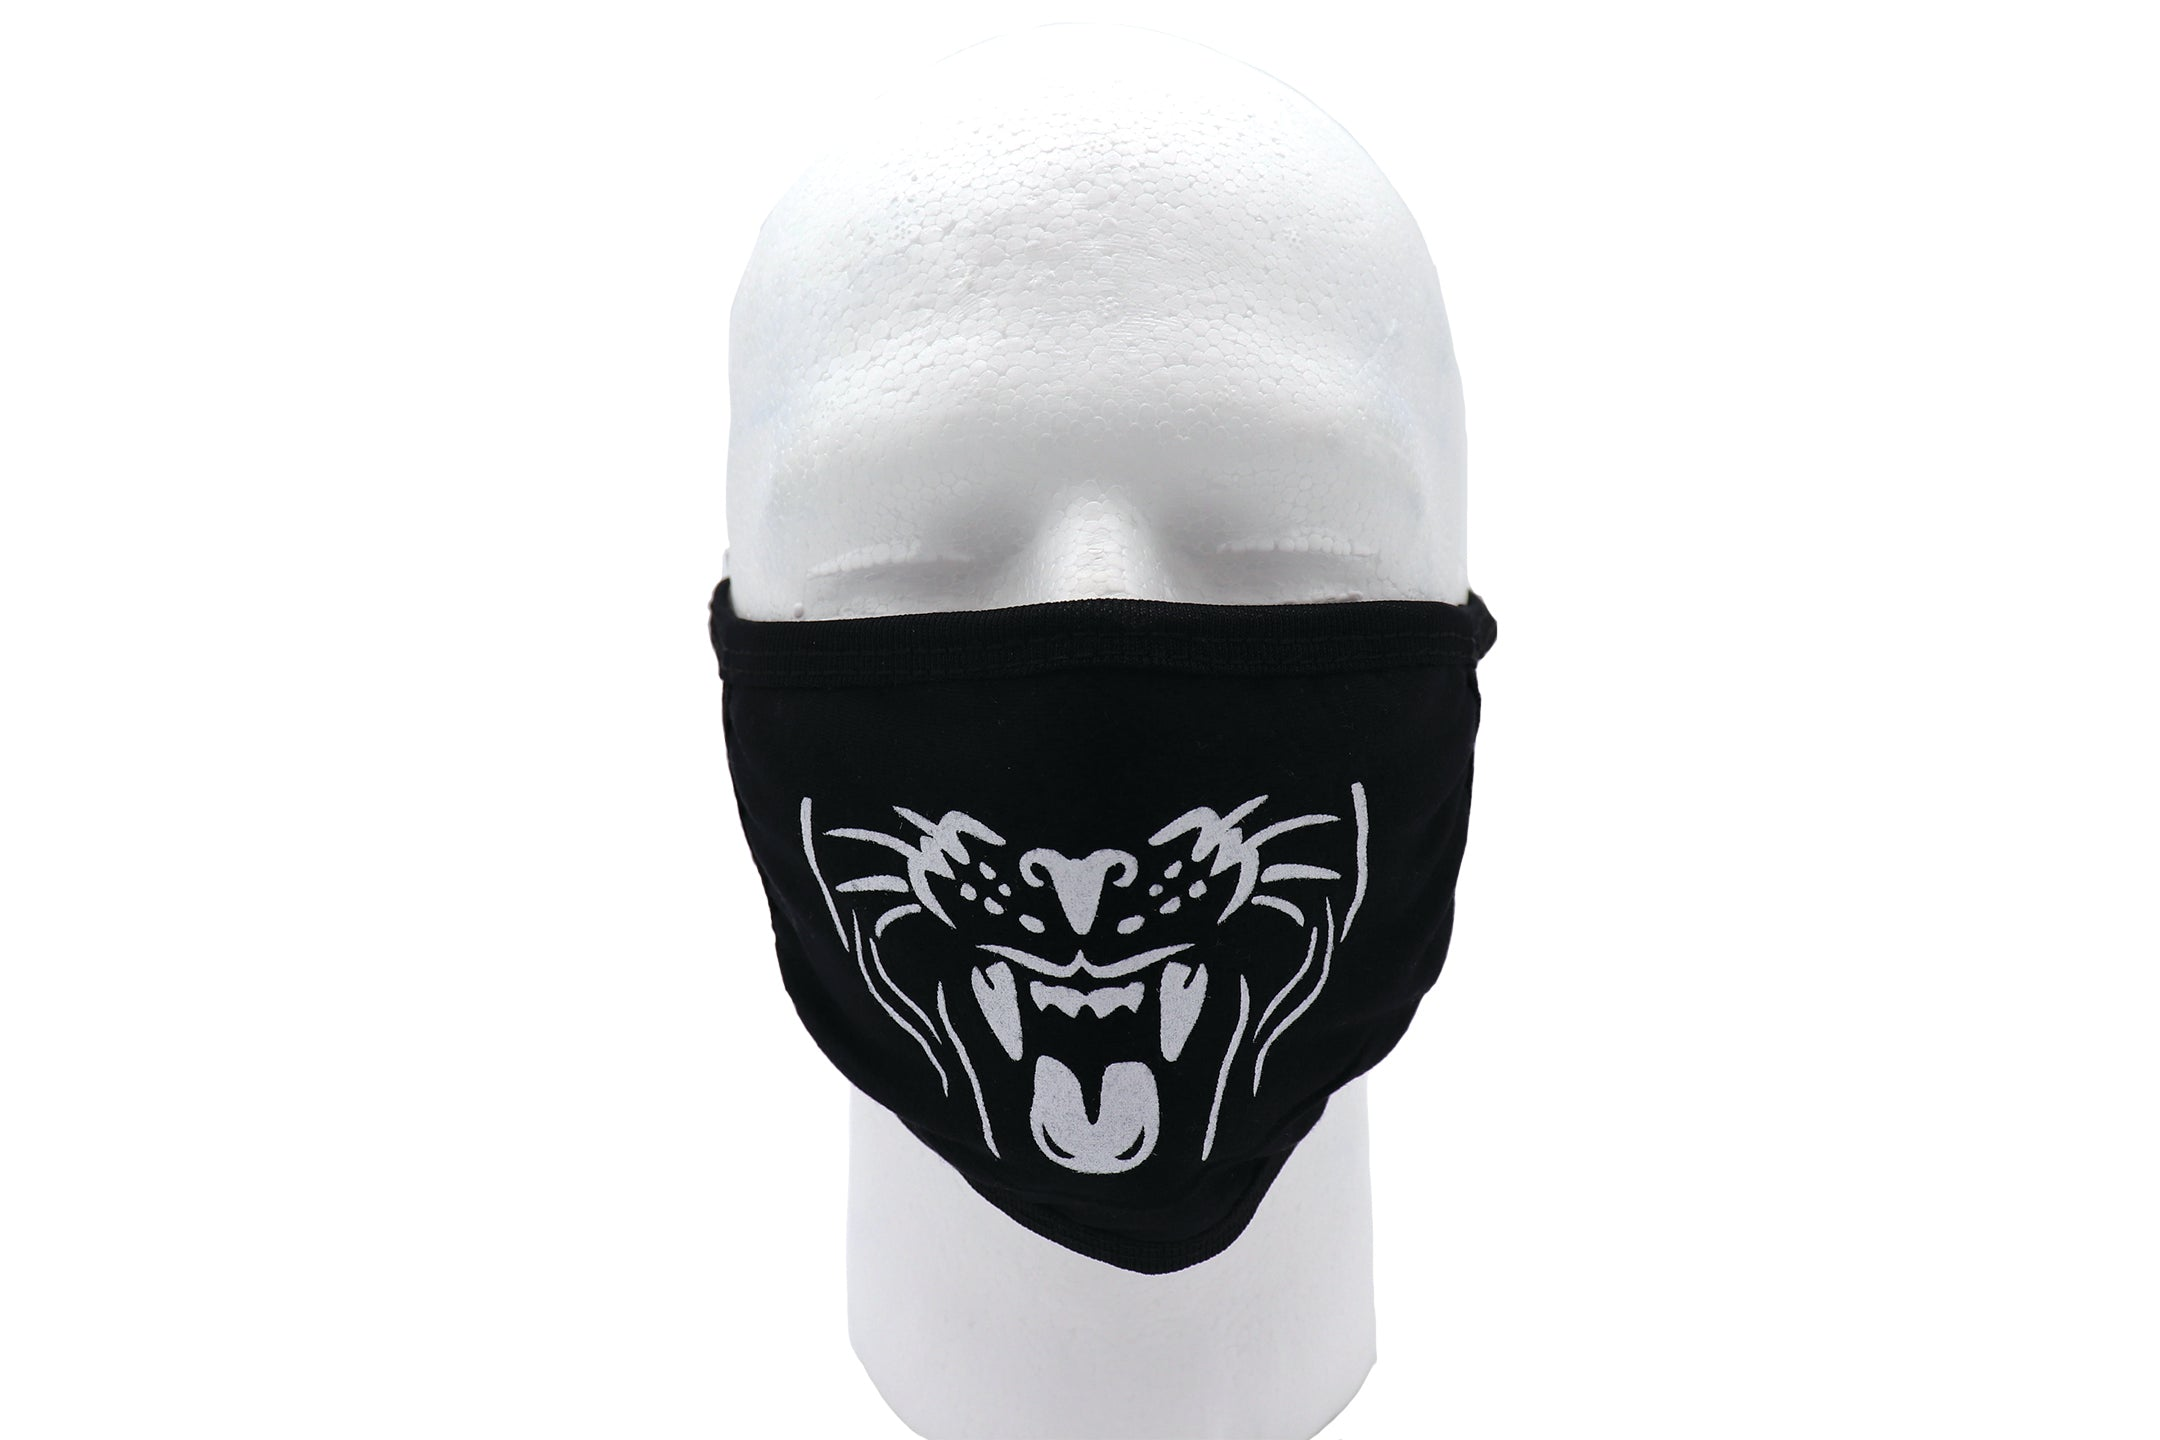 Black face mask, jaguar face mask, cat face mask, fierce face mask. Black face mask cotton material with printed white jaguar face open with teeth and tong showing. Mandibular face of jaguar cat print on black face mask.